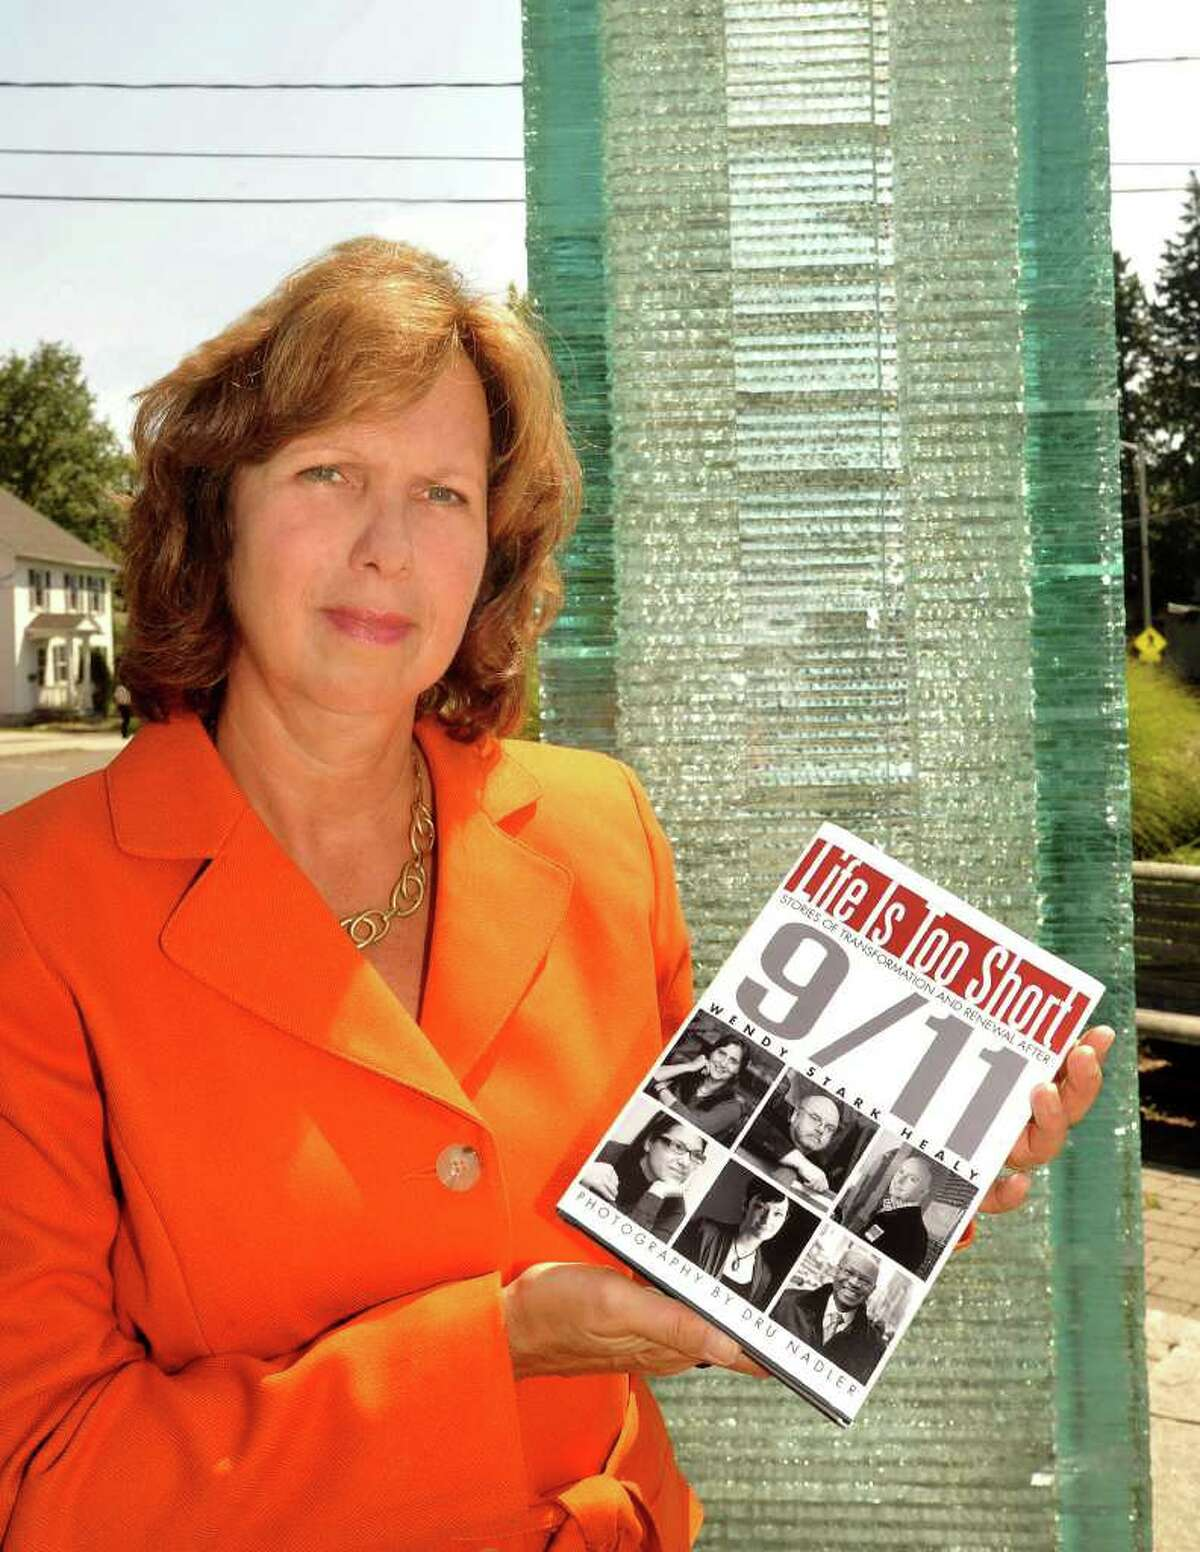 Wendy Healy holds her book